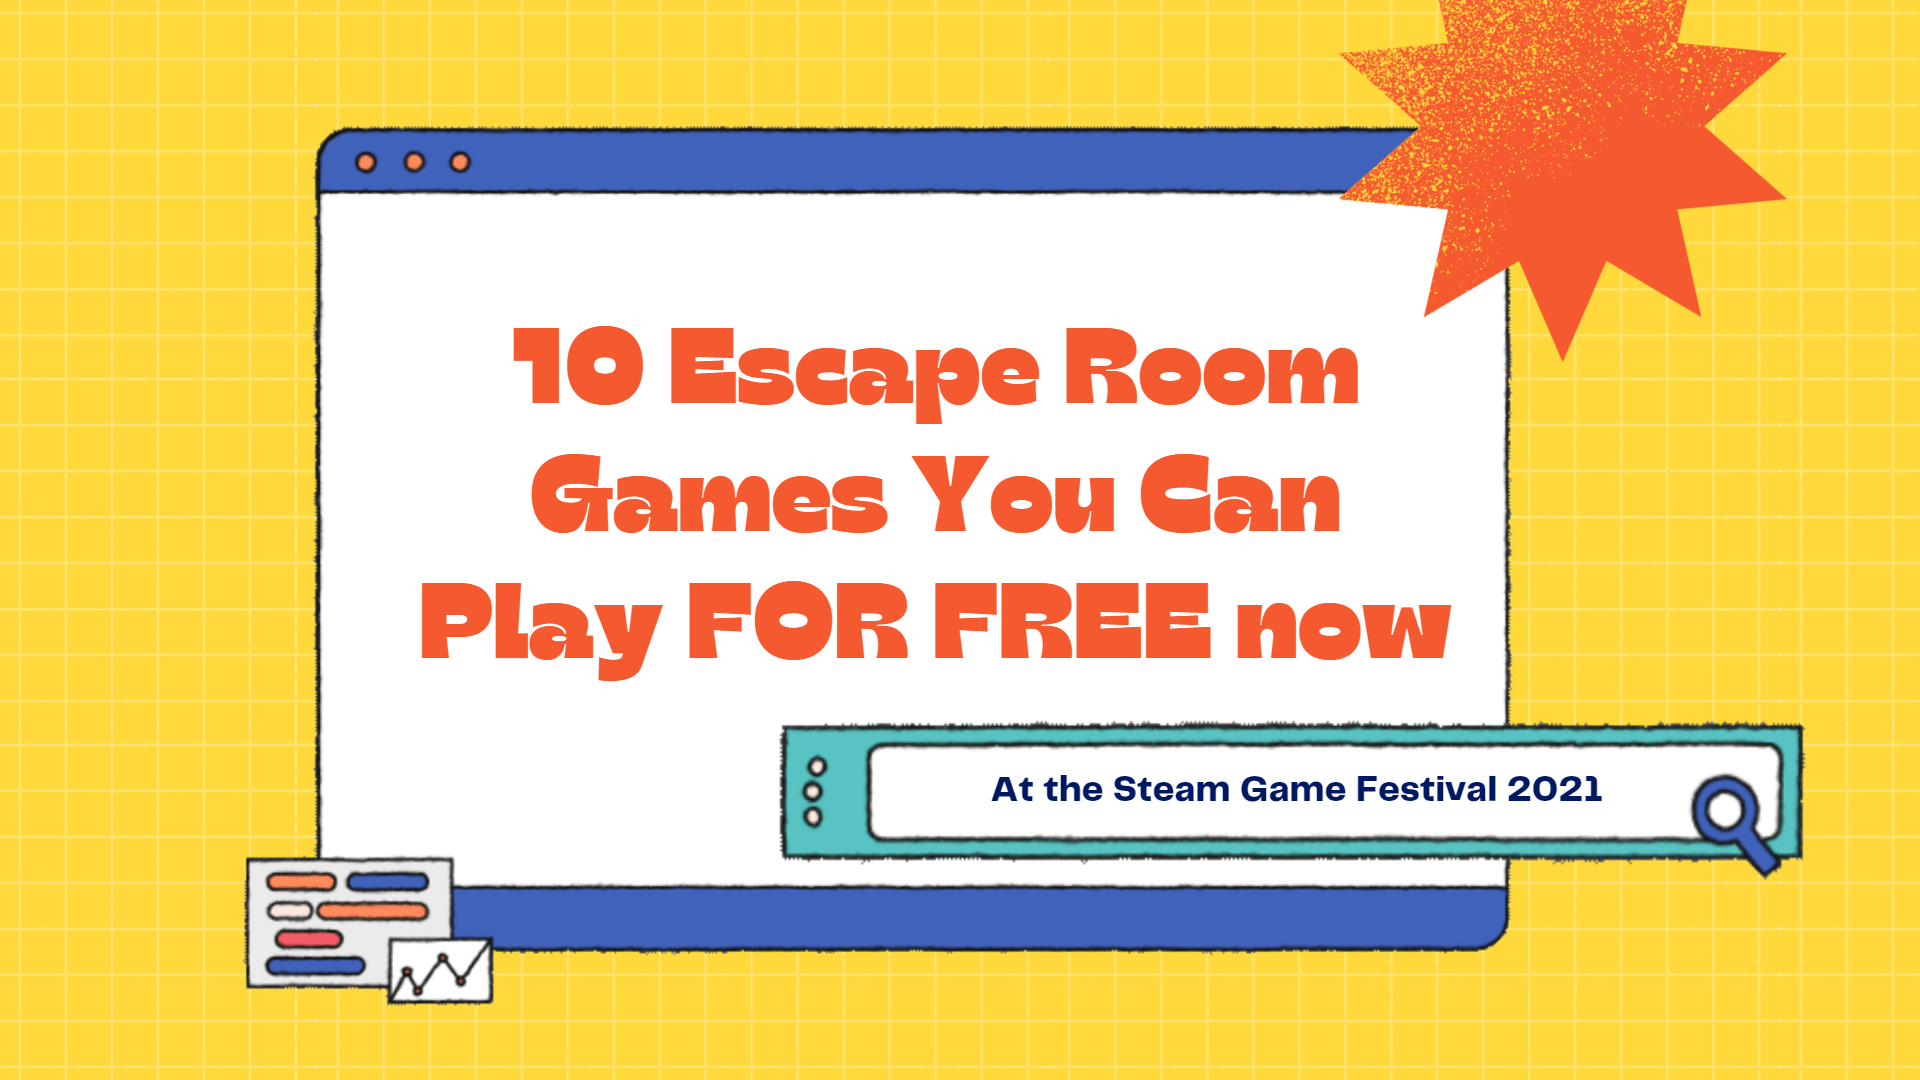 10 Escape Room Video Games you can play for FREE during the Steam Game Festival 2021